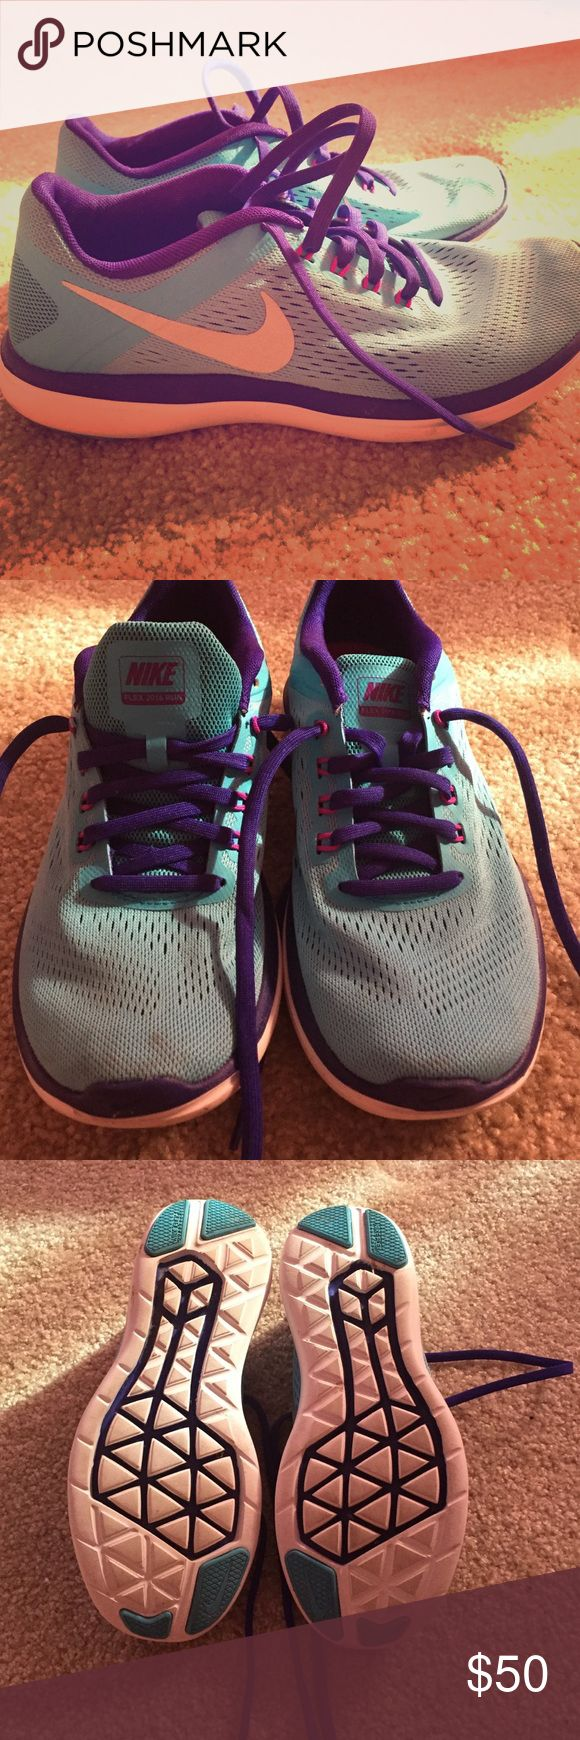 Nike Flex 2016 Run Like new 2016 Nike Flex Run shoes. Teal with purple accents. Worn once. Bought from DSW. Nike Shoes Athletic Shoes